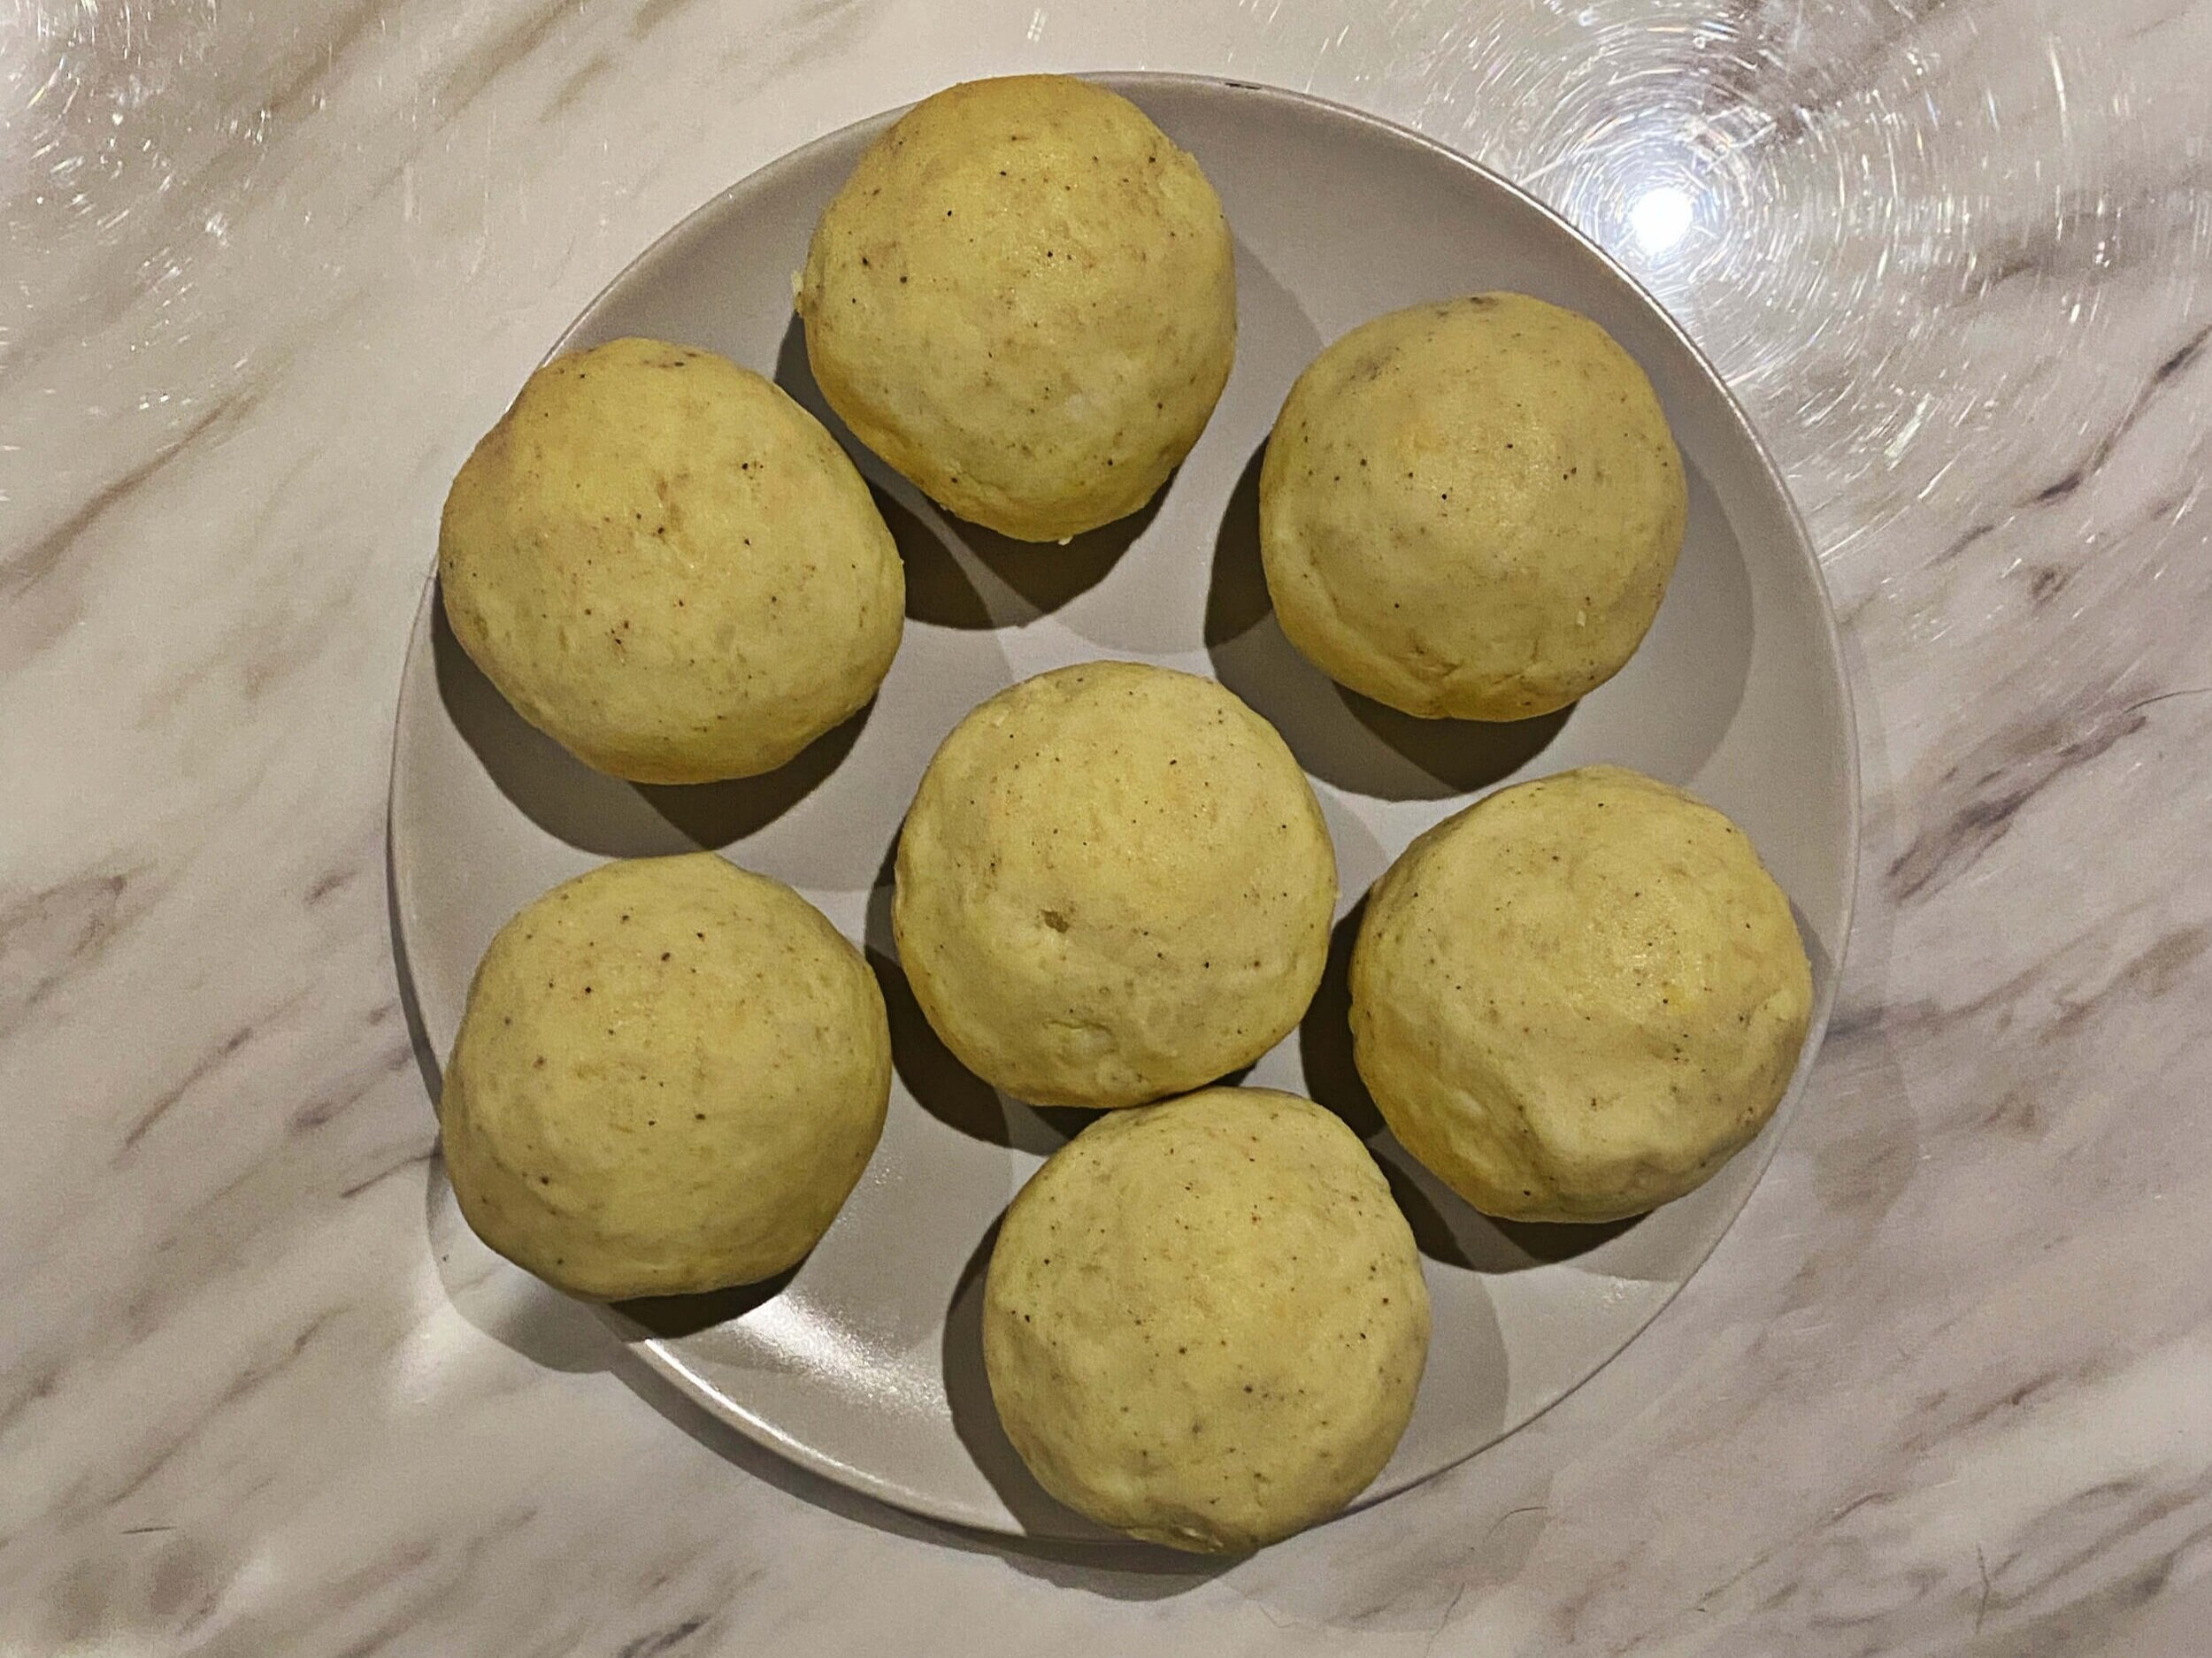 The potato dumplings before they are boiled.